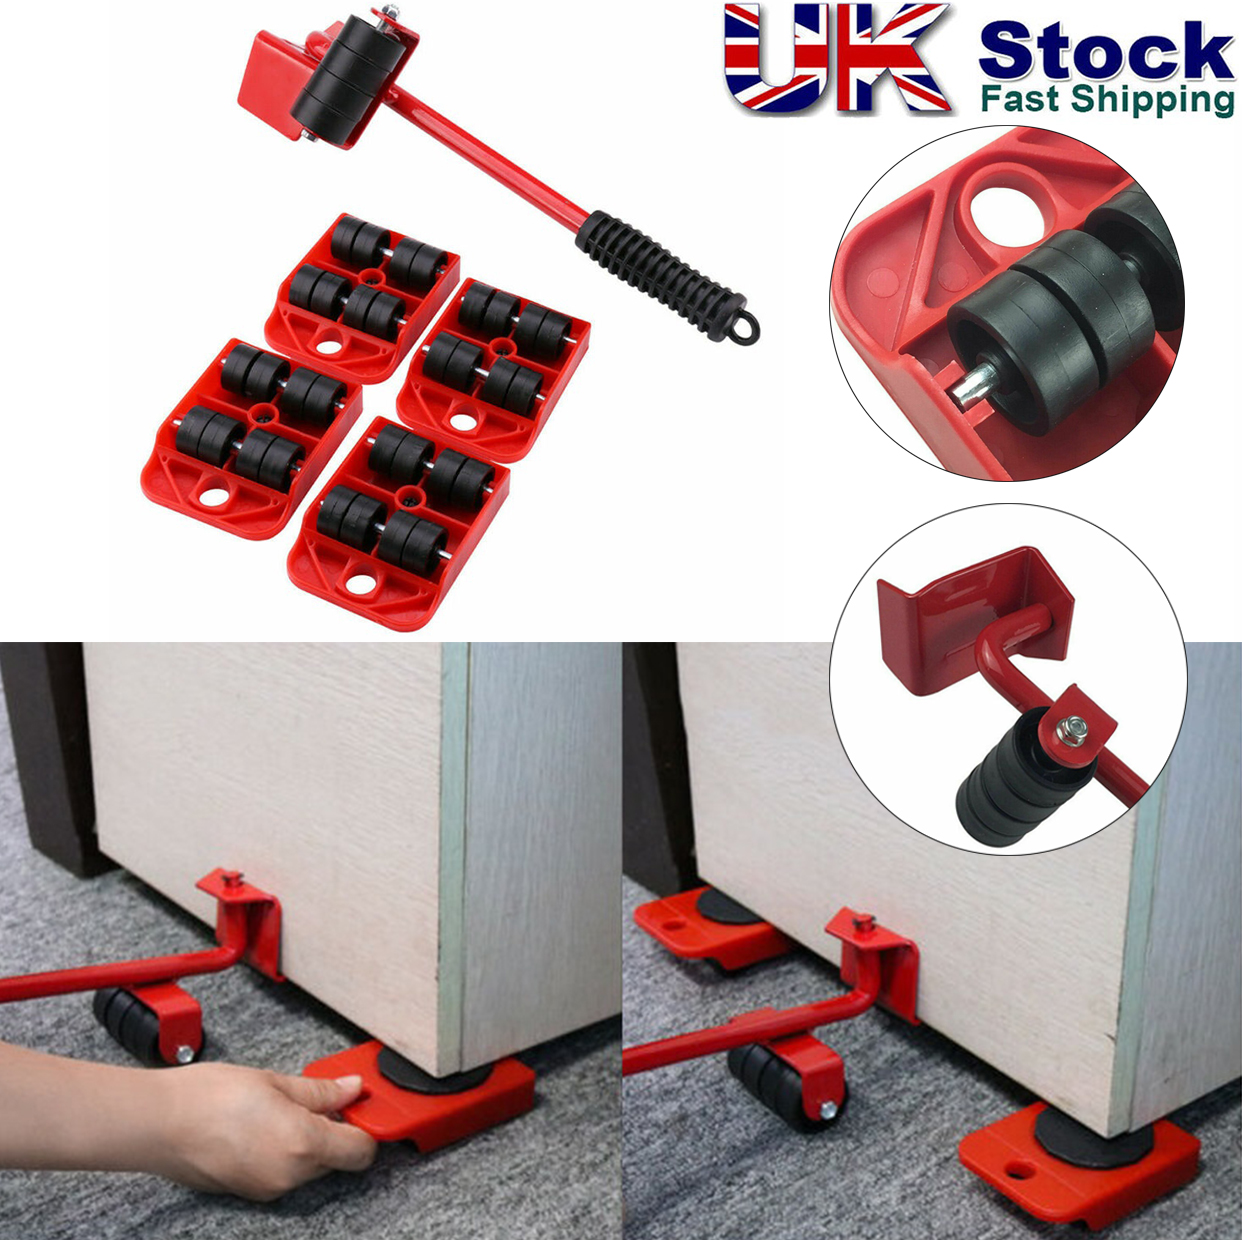 Heavy Furniture Shifter Lifter Wheels Moving Slider Mover Table Sofa Removal Set